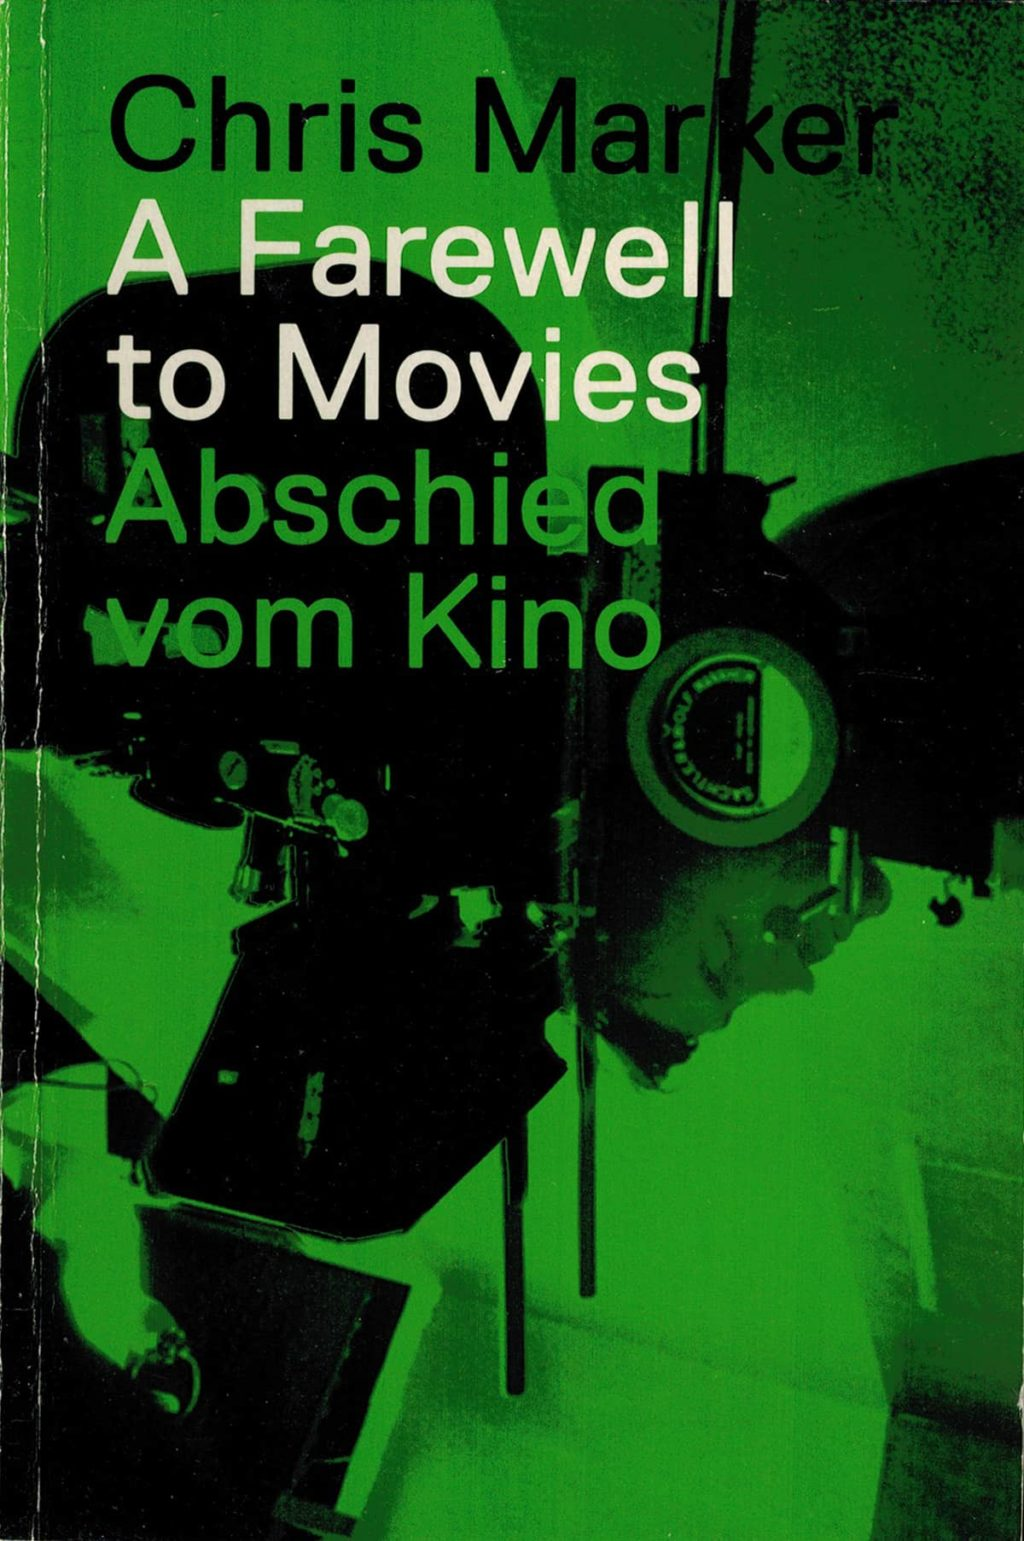 abschied vom kino farewell to movies